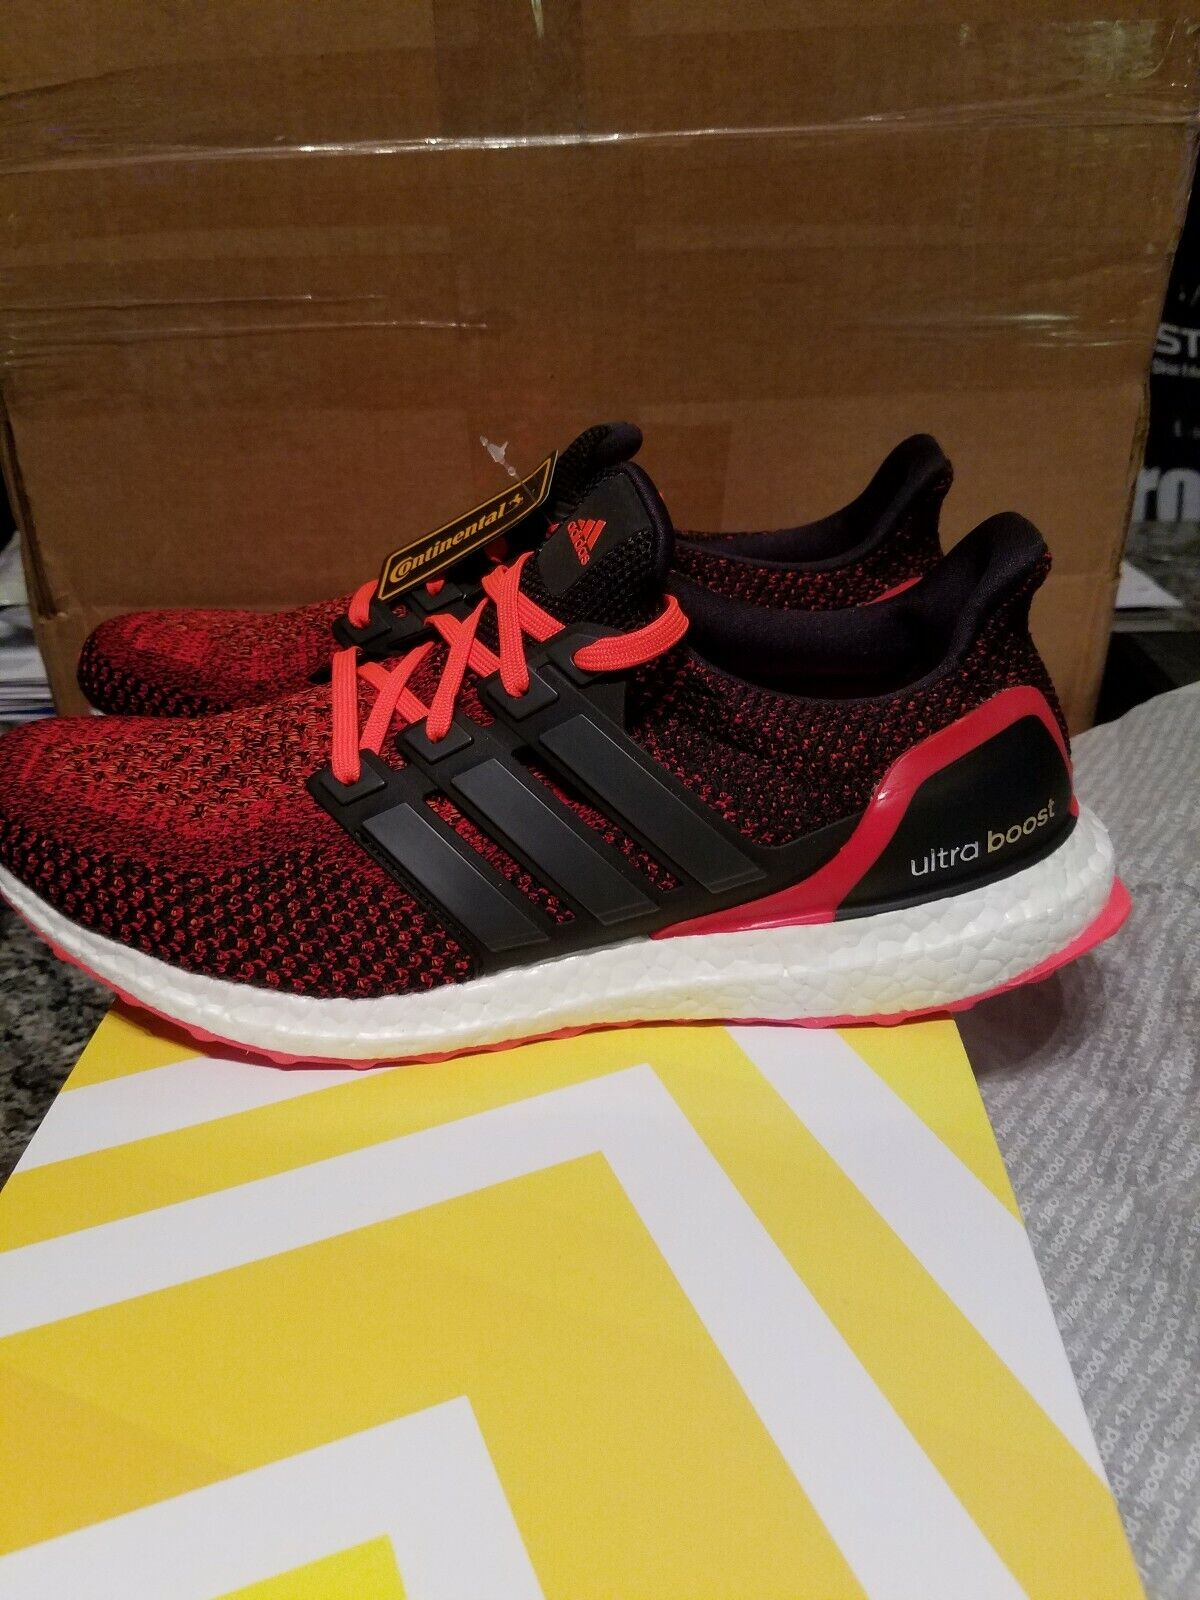 Adidas Ultra Boost 1.0 Solar Red Brand New Men's US Size 10.5